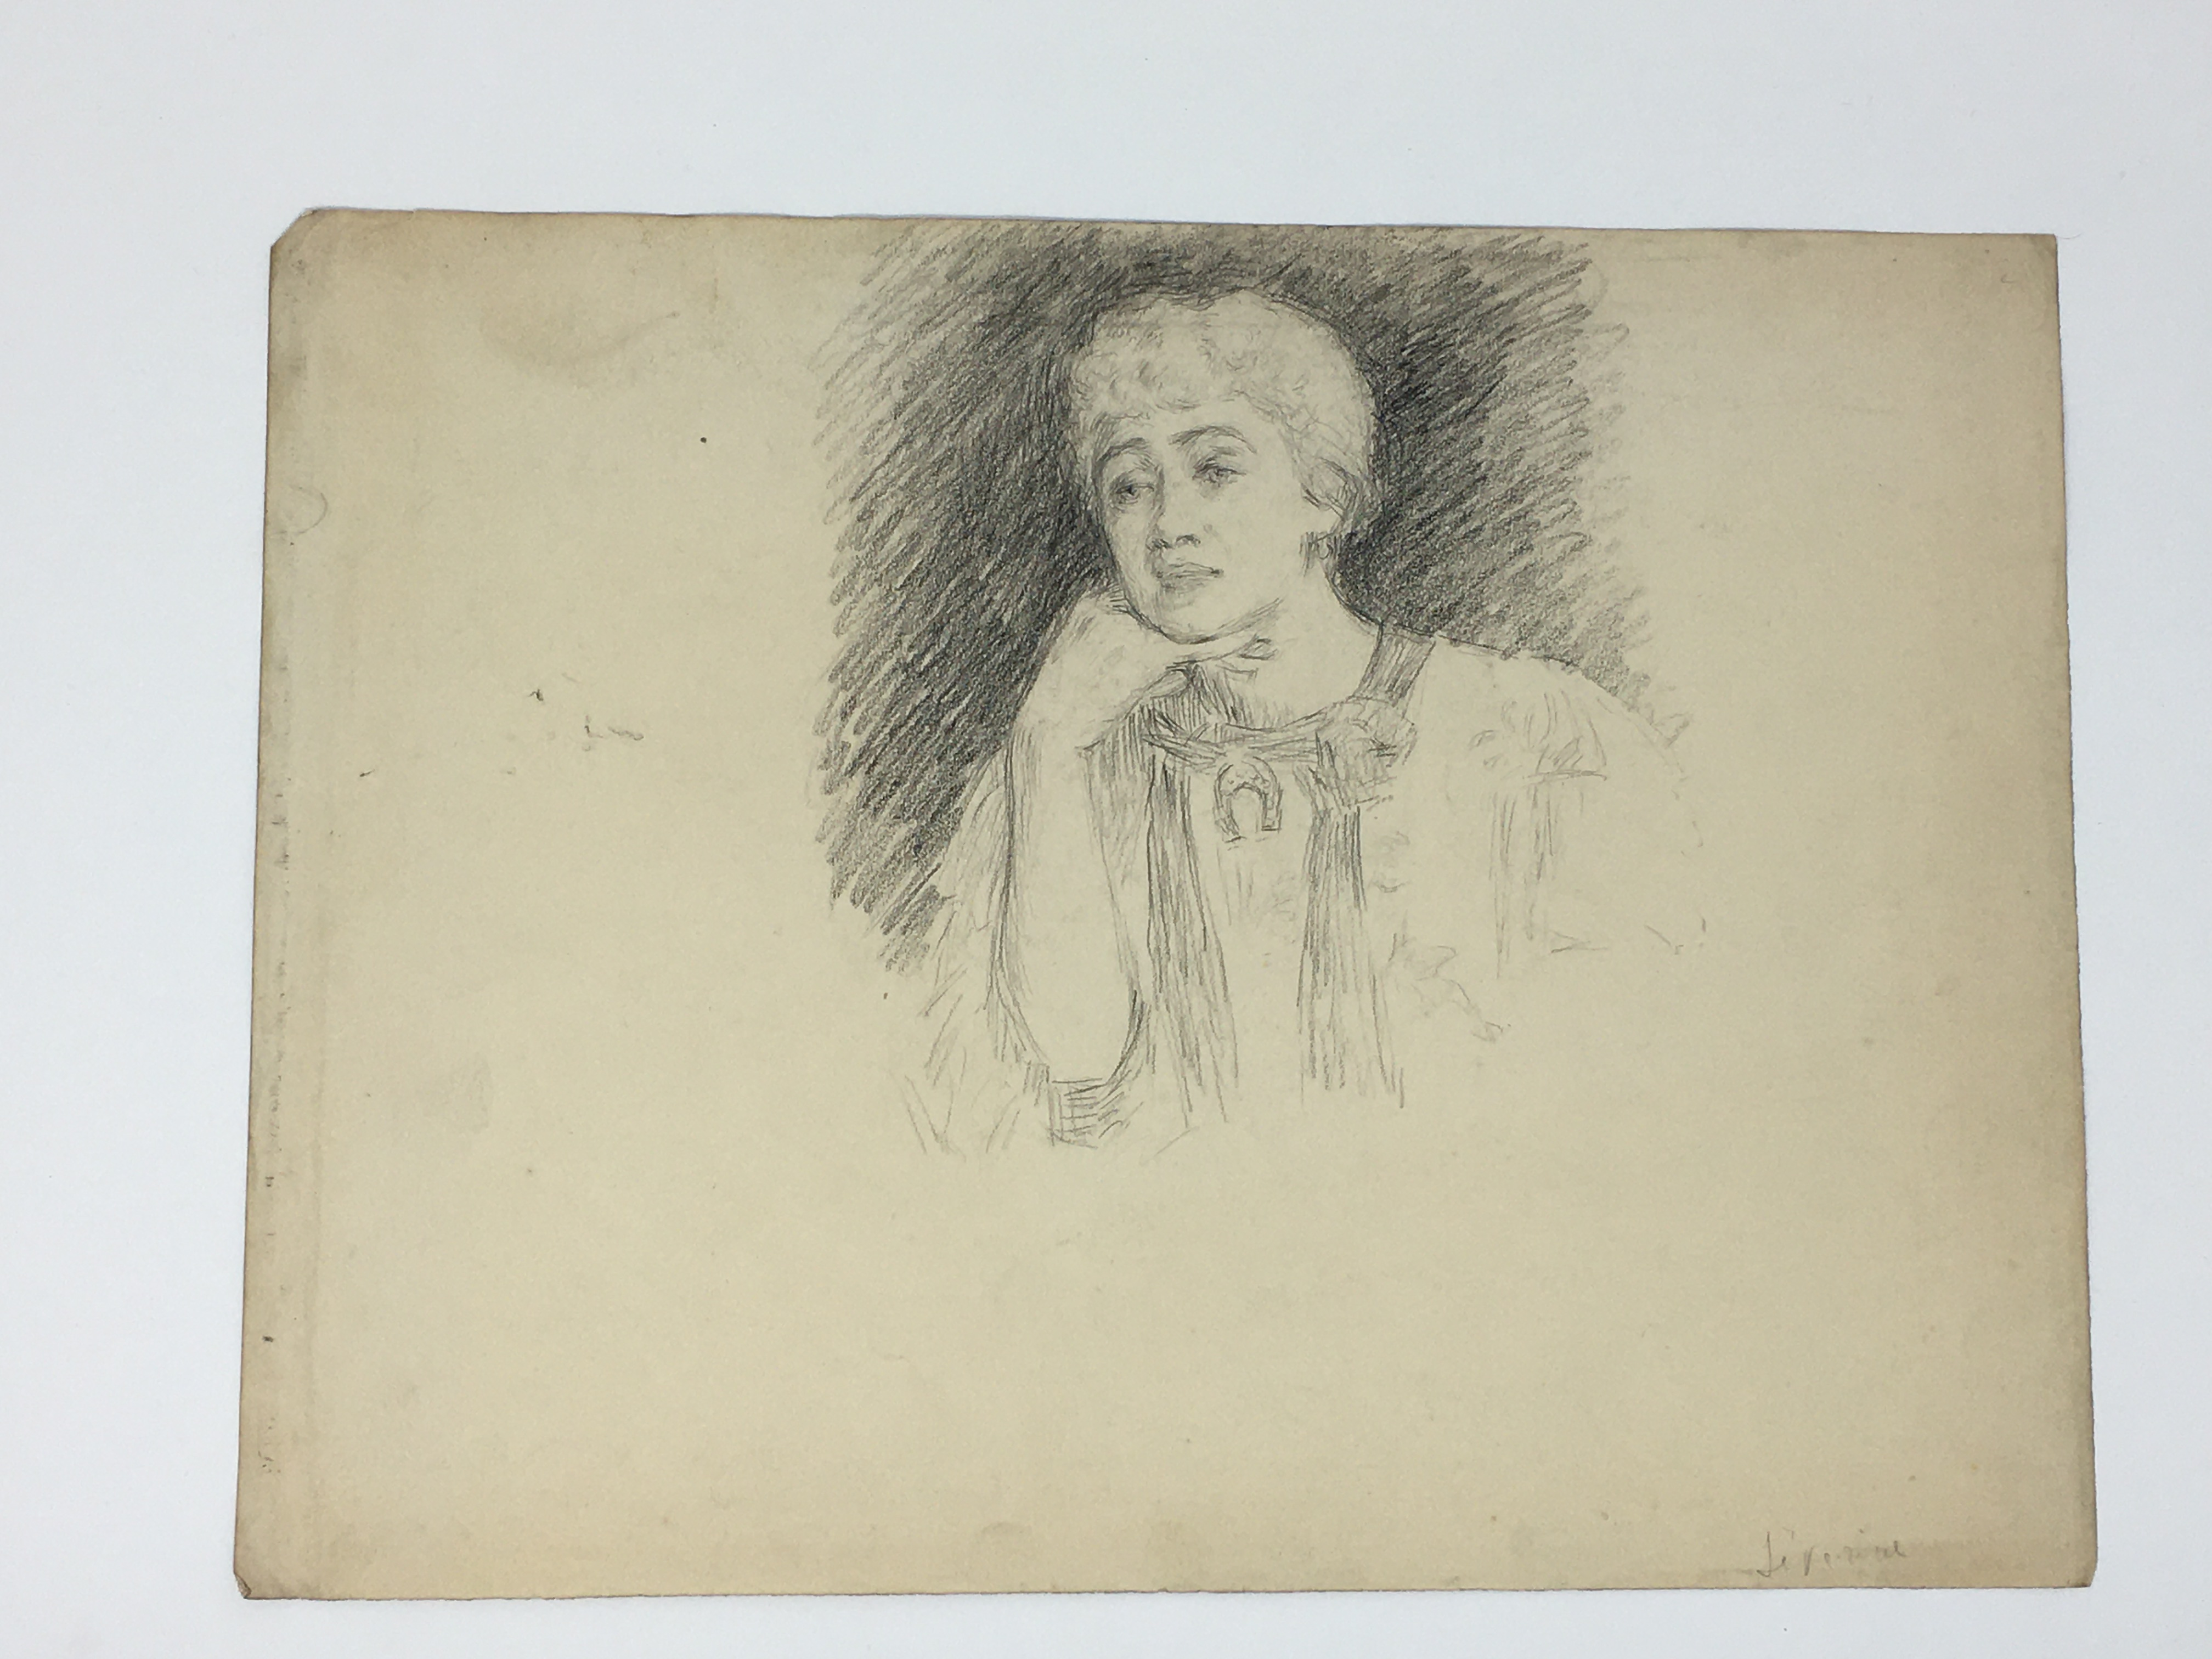 J'Accuse Newspaper, Emile Zola Quote, Signed Dreyfus Portrait, Rare Trial Drawings & Schwartzkoppen - Image 62 of 74